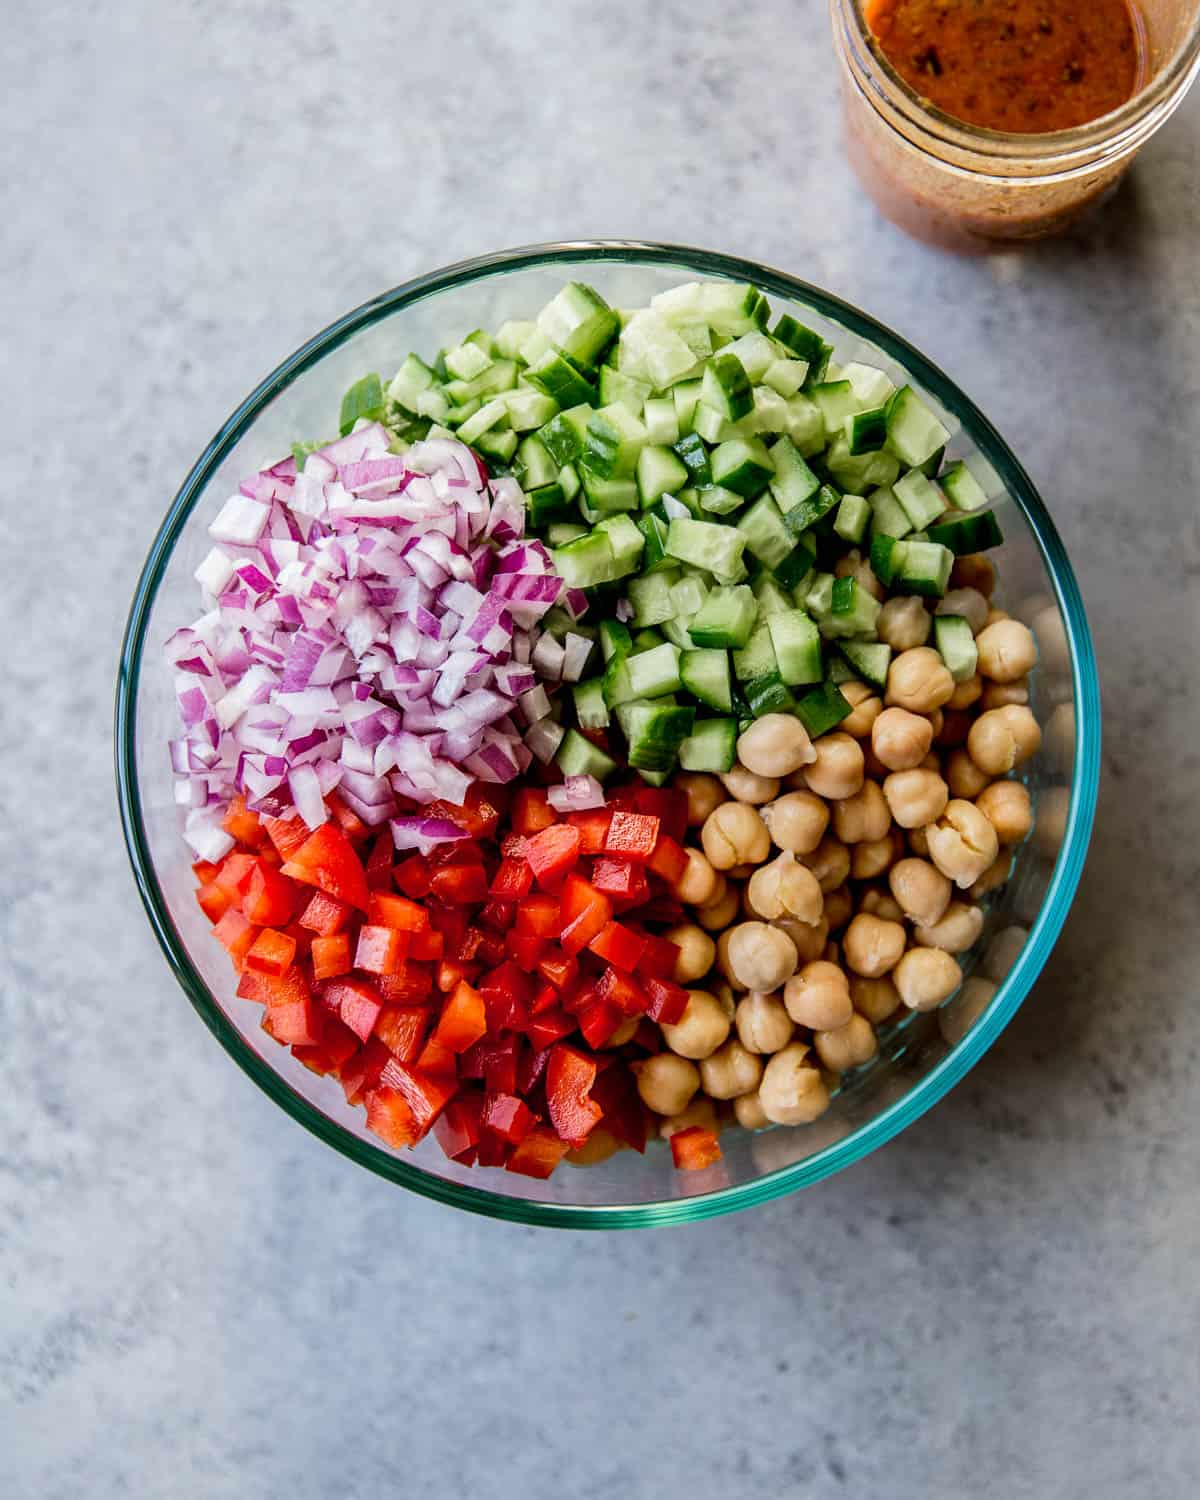 chickpeas, bell peppers, cucumbers and onions in a clear glass bowl